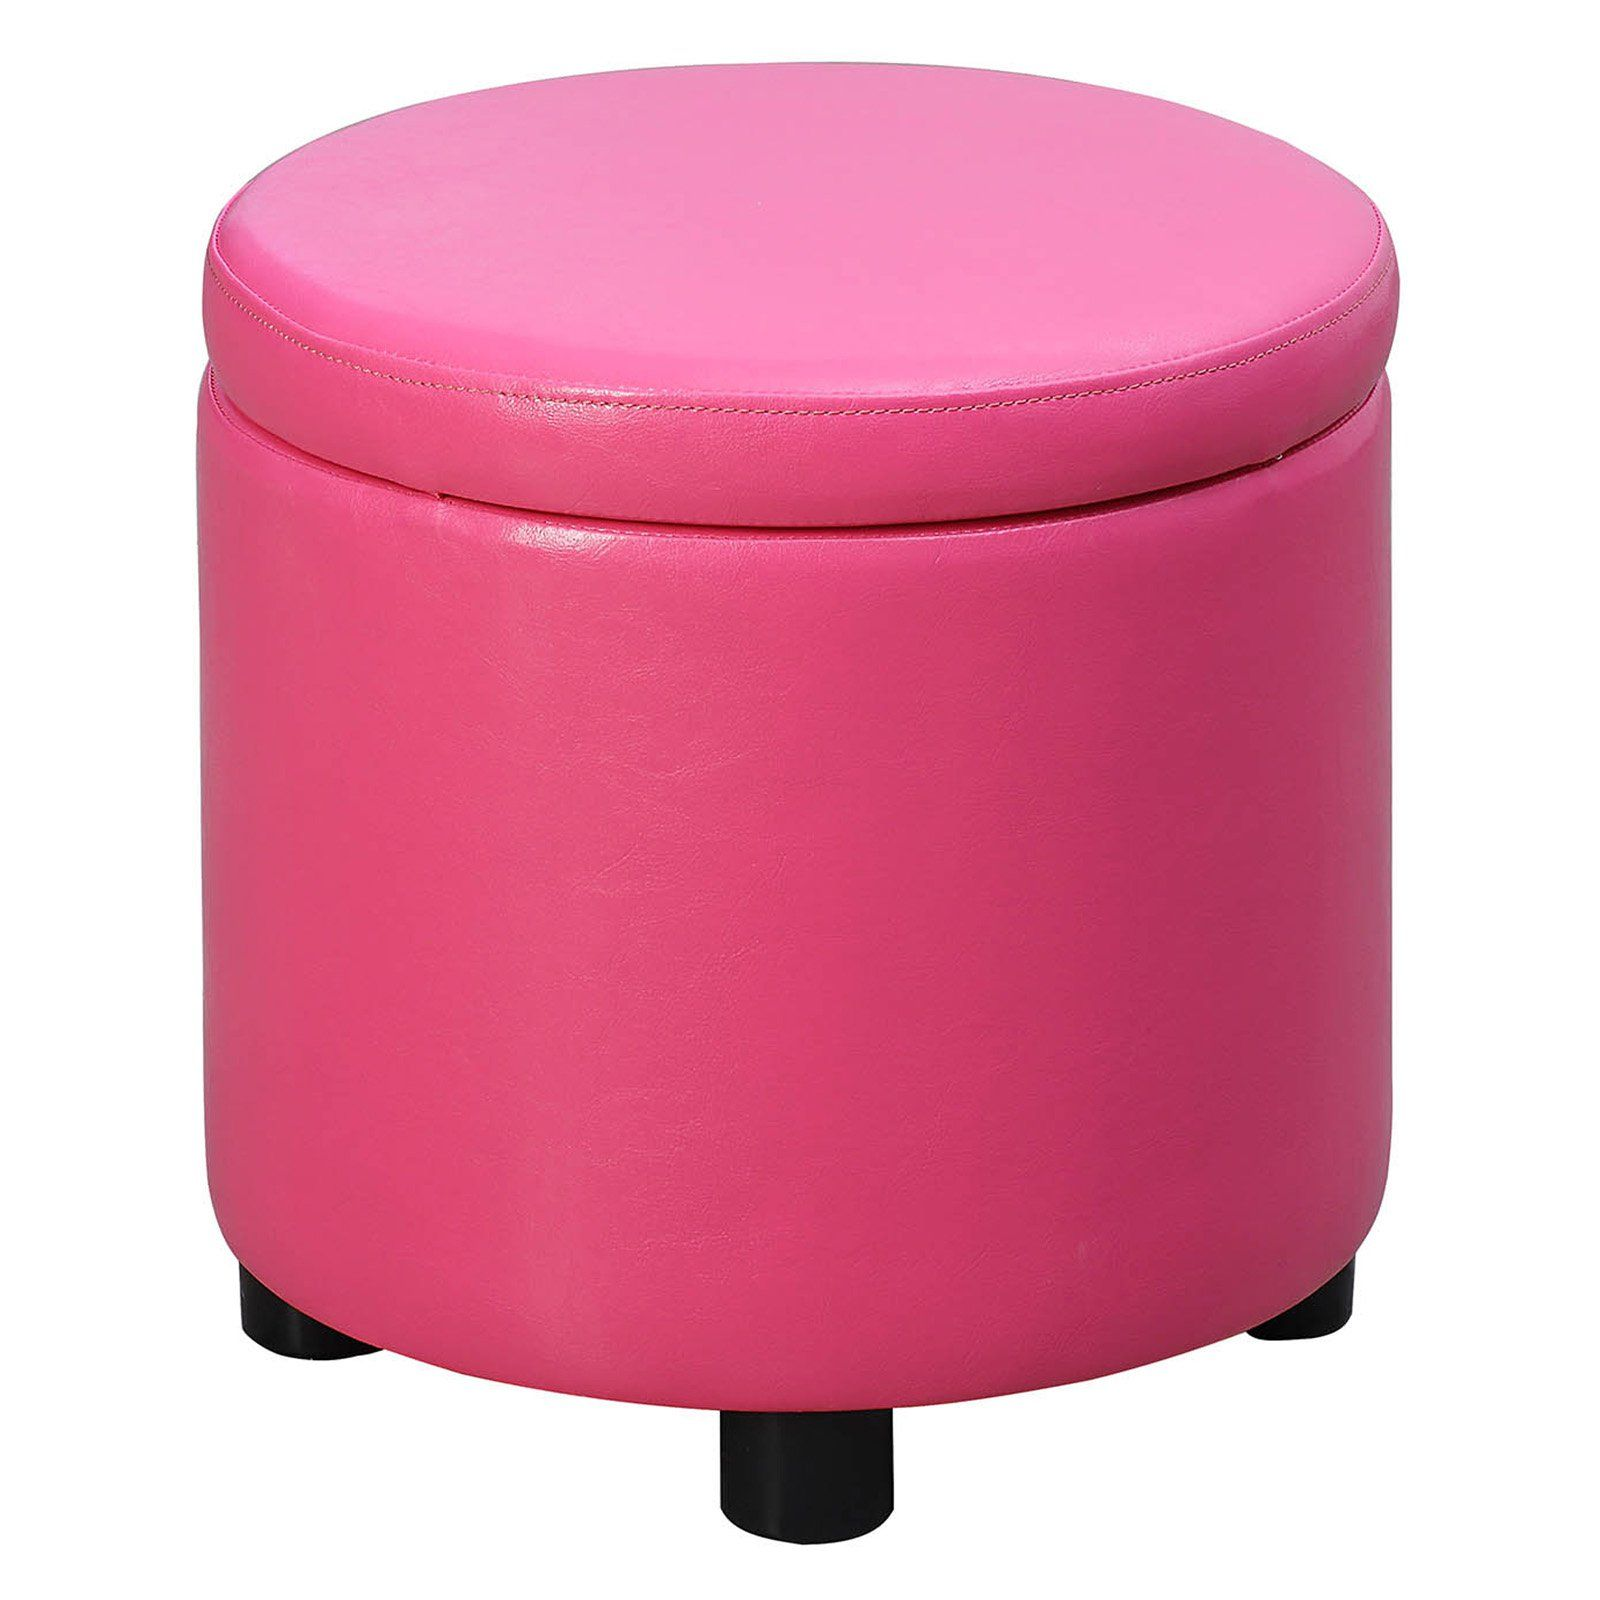 Awesome Convenience Concepts Designs4Comfort Storage Ottoman Pink In Short Links Chair Design For Home Short Linksinfo